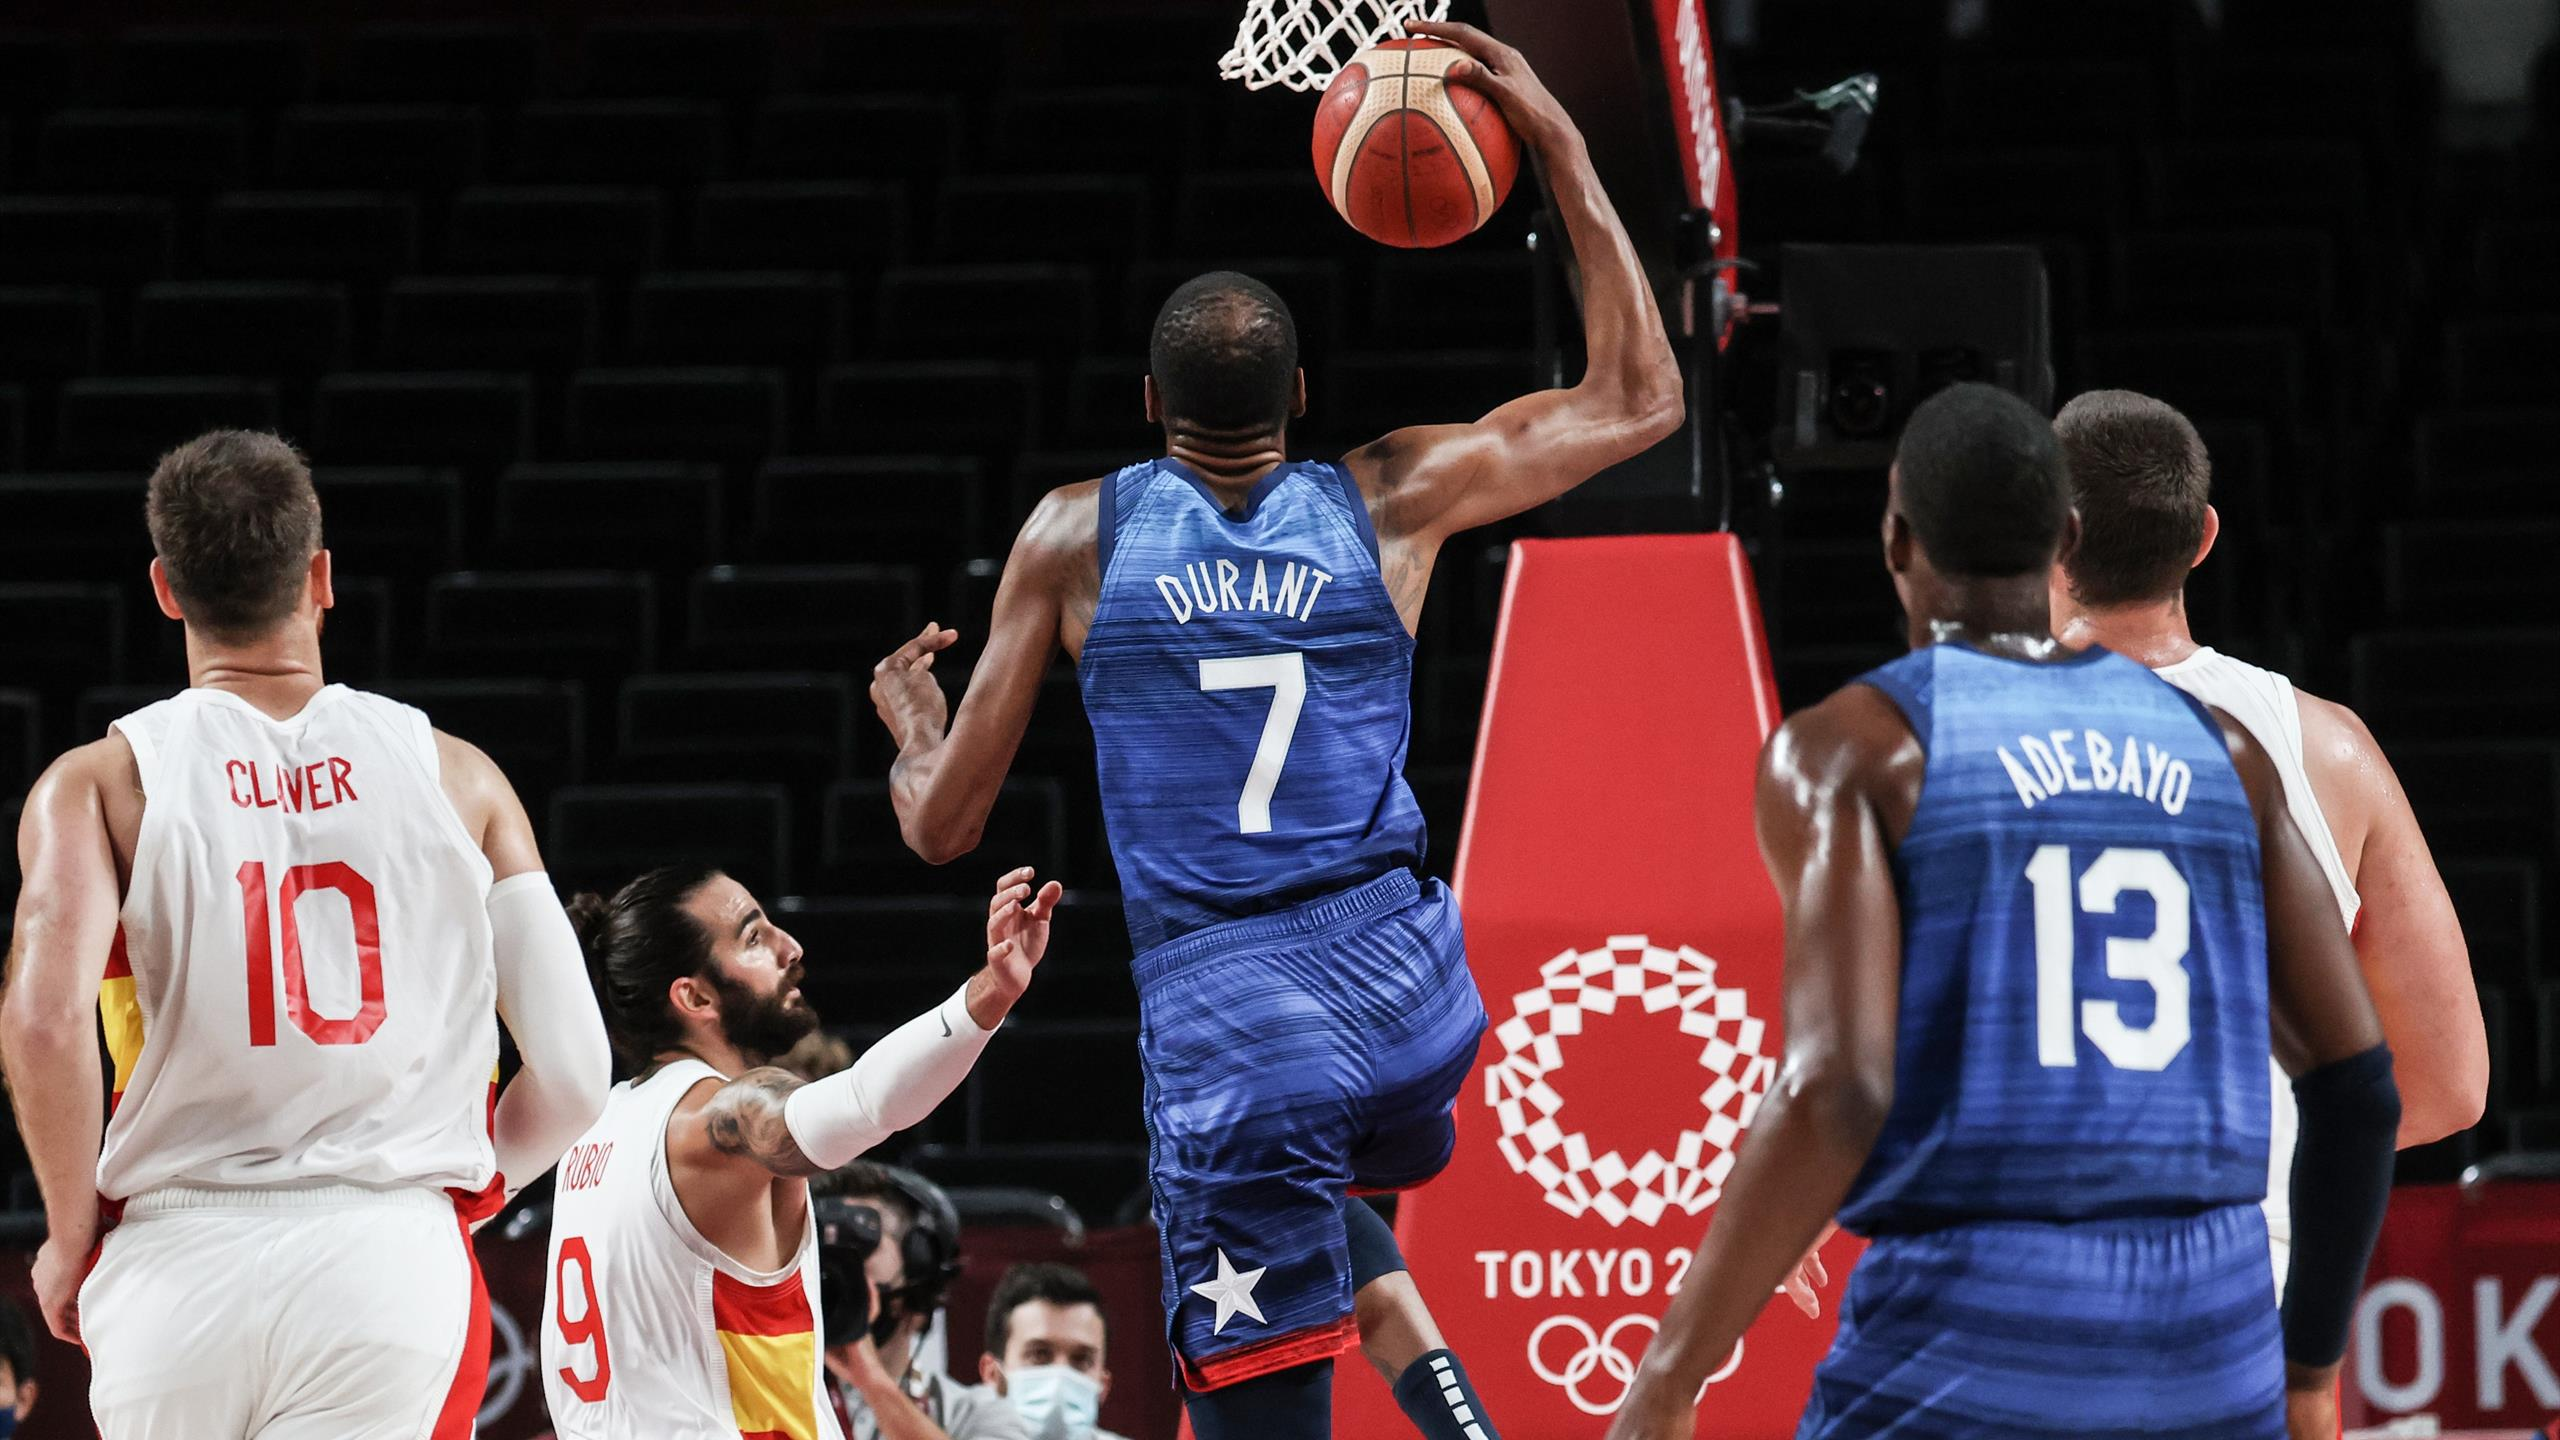 Tokyo 2020 |  The United States reached the semi-finals after beating Spain